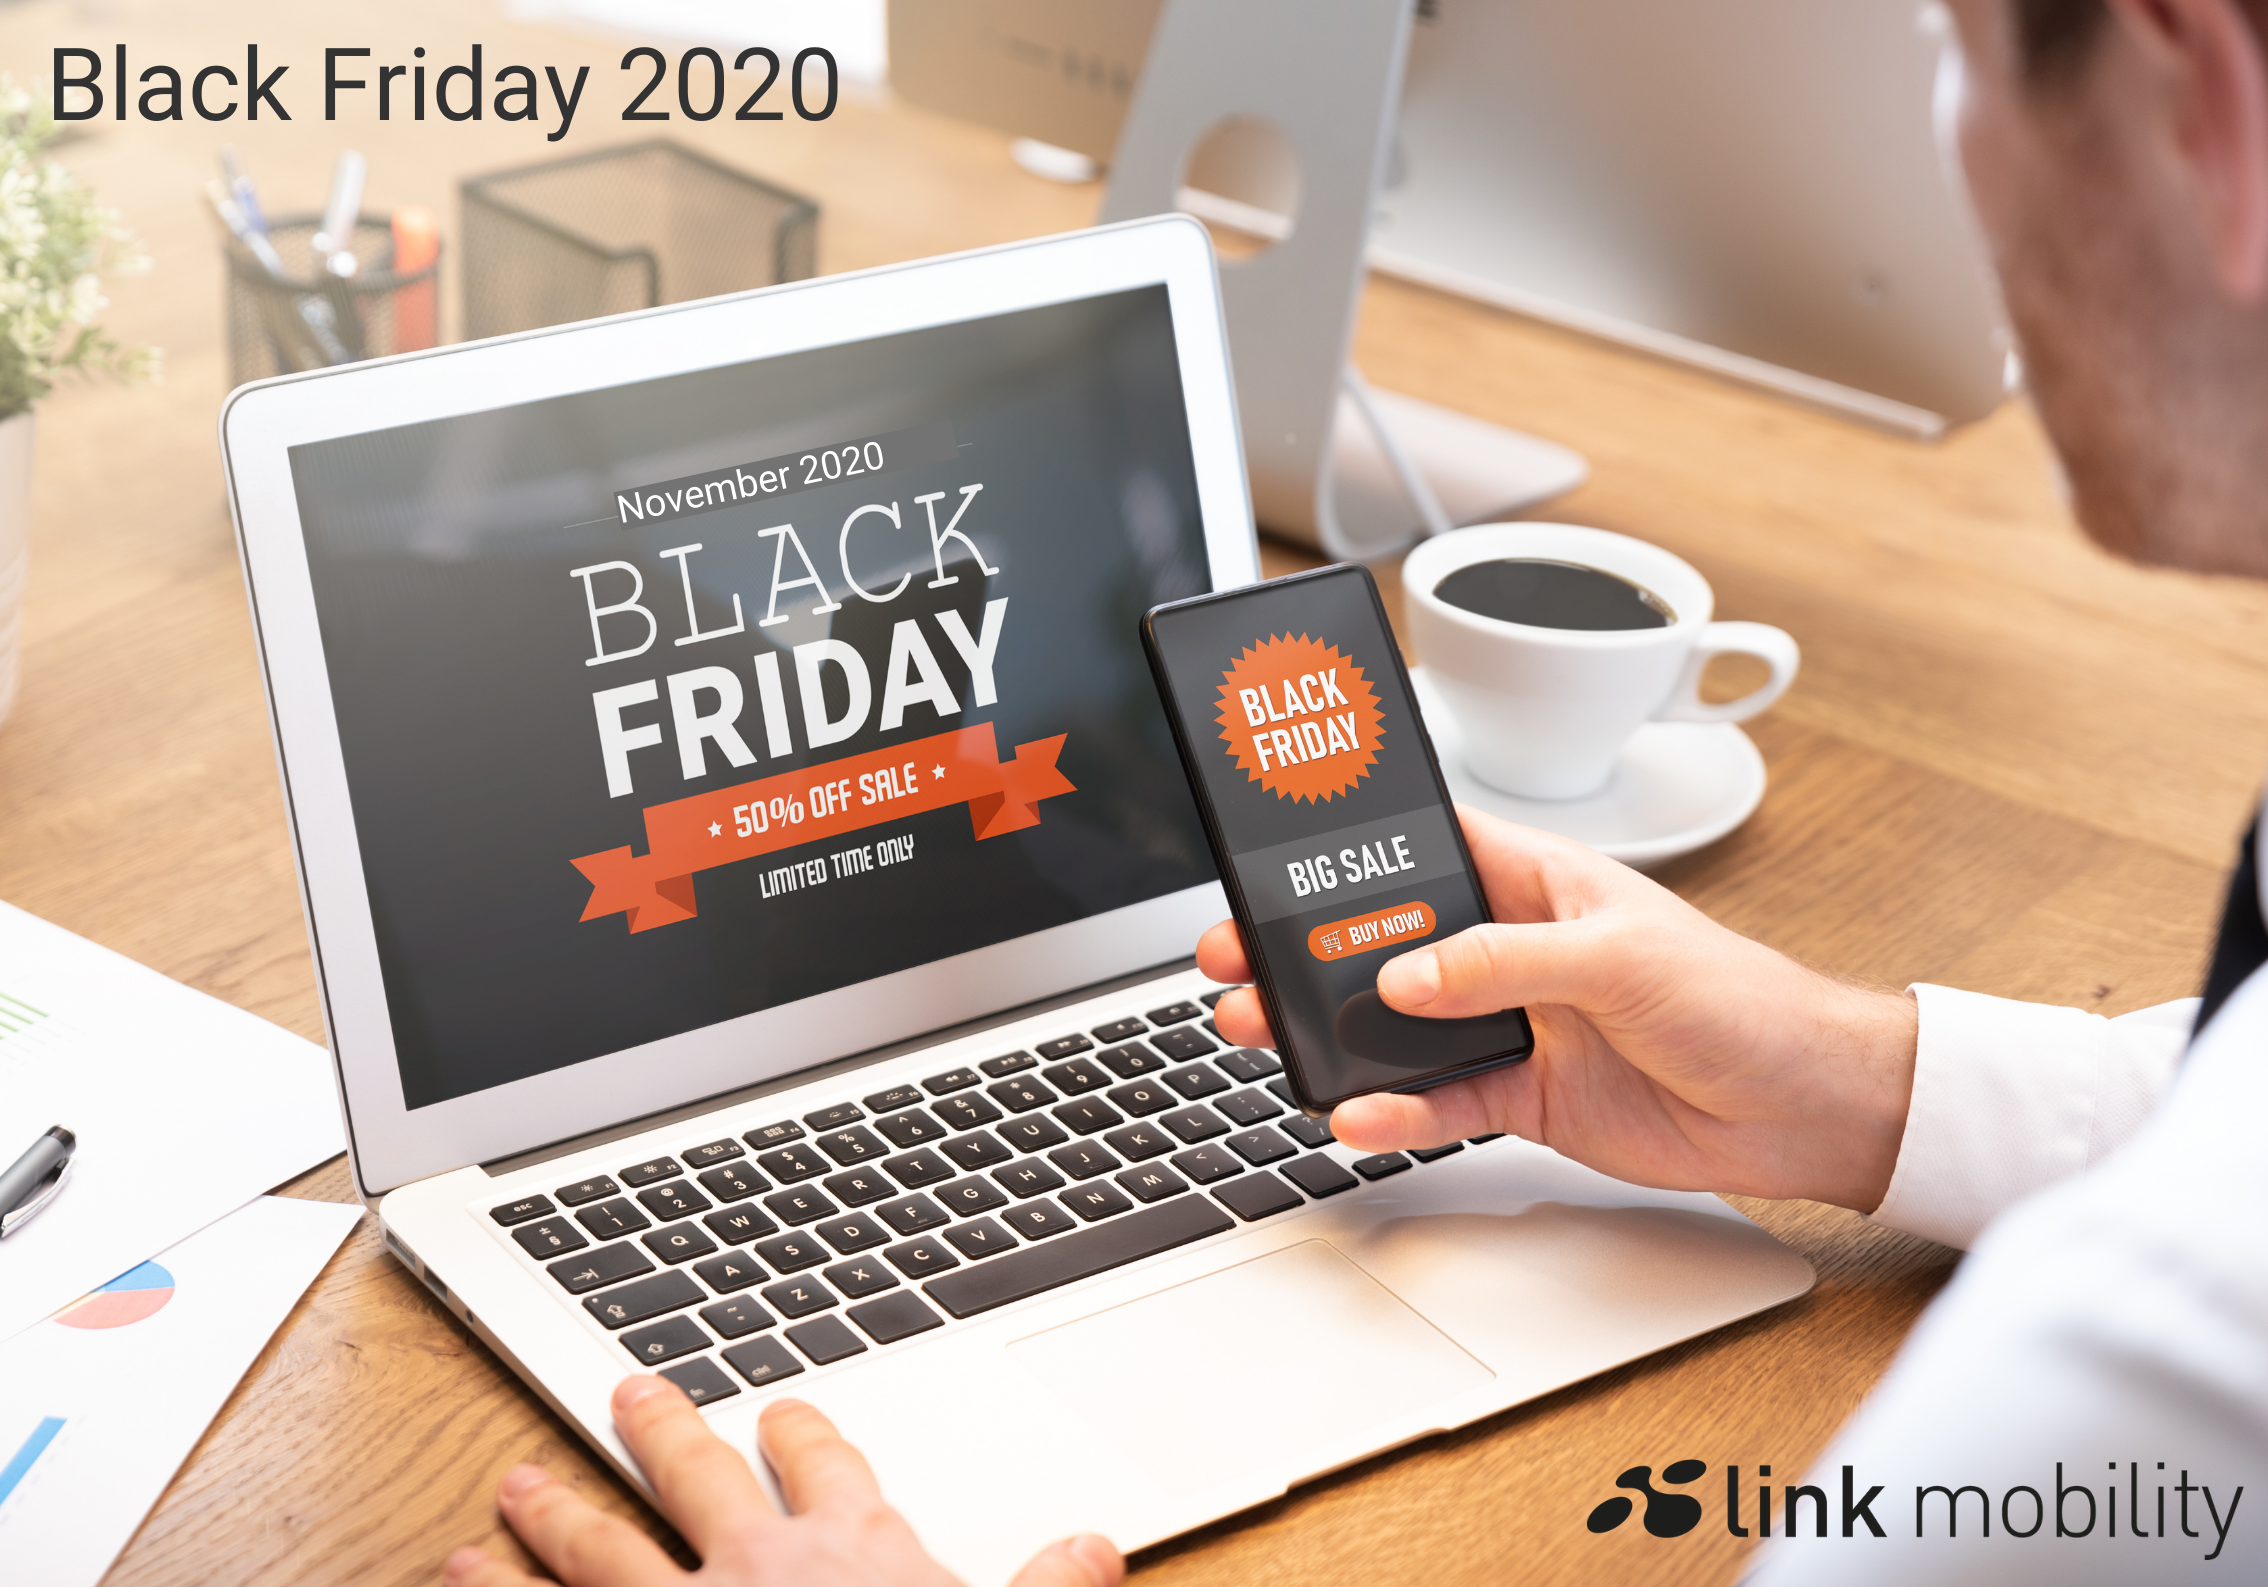 Black Friday 2020 - LINK Mobility